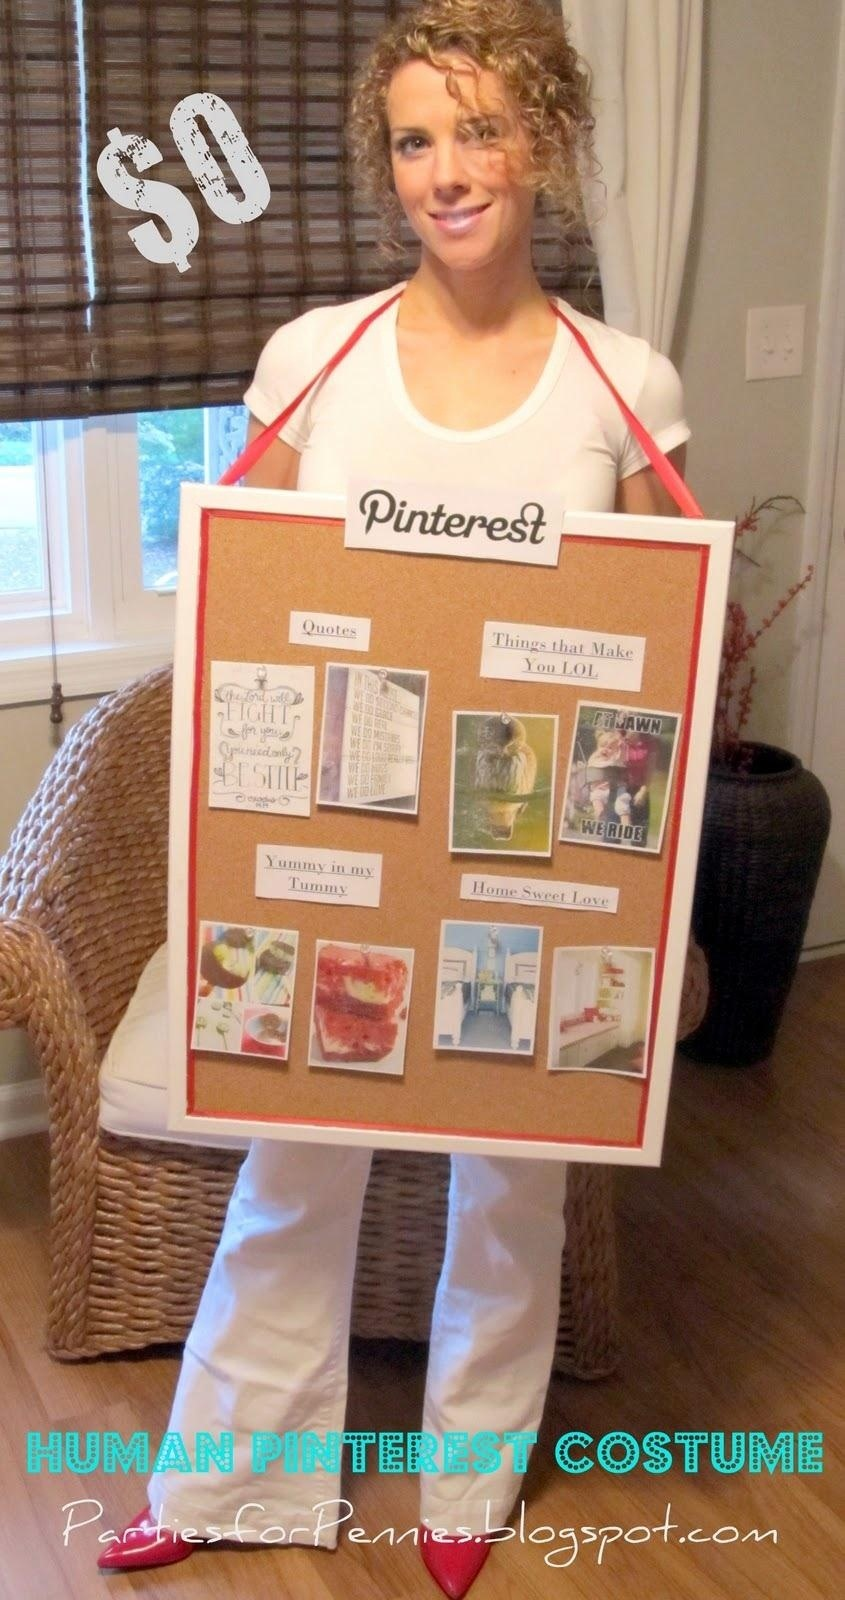 Non sexy adult halloween costume ideas for women cafemom social media networks ever and it also makes a great simple costume you can go with an actual cork board and pin pictures to yourself like heidi rew solutioingenieria Gallery